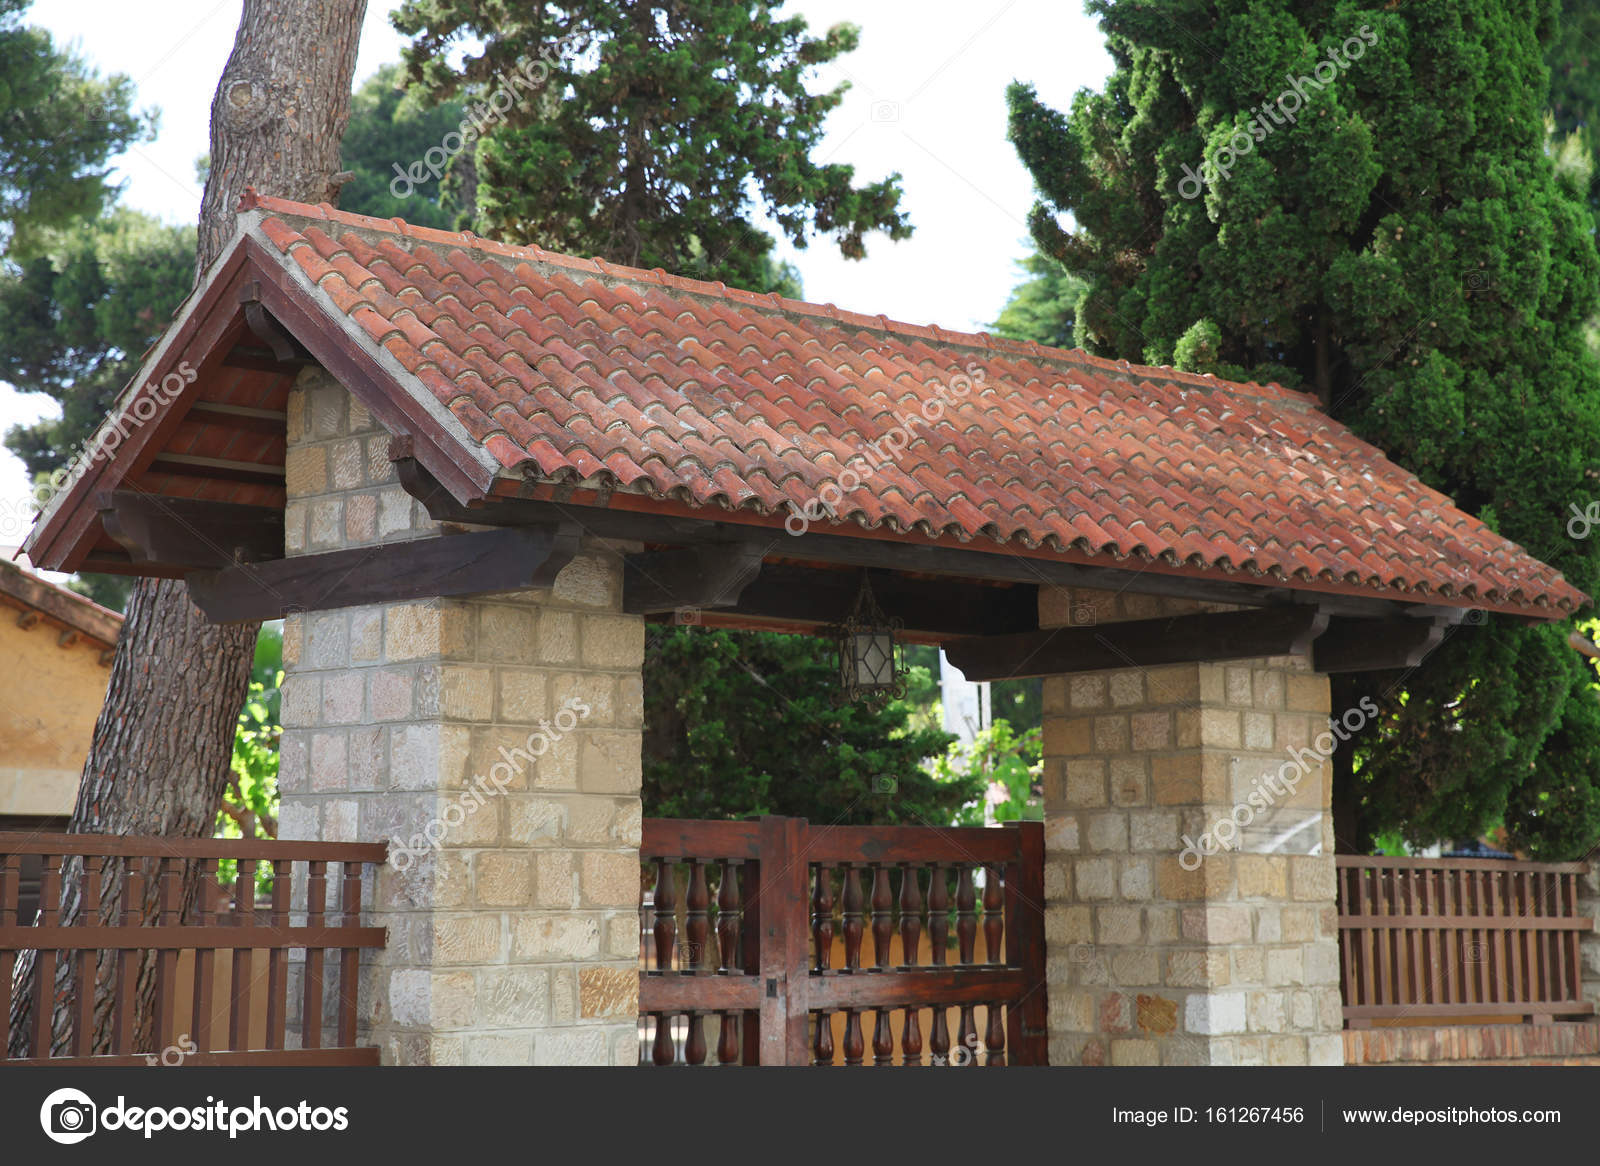 Images Gate Roof Design Stone Gate With The Tiles On The Roof Decorated Facade Stock Photo C Guas 161267456